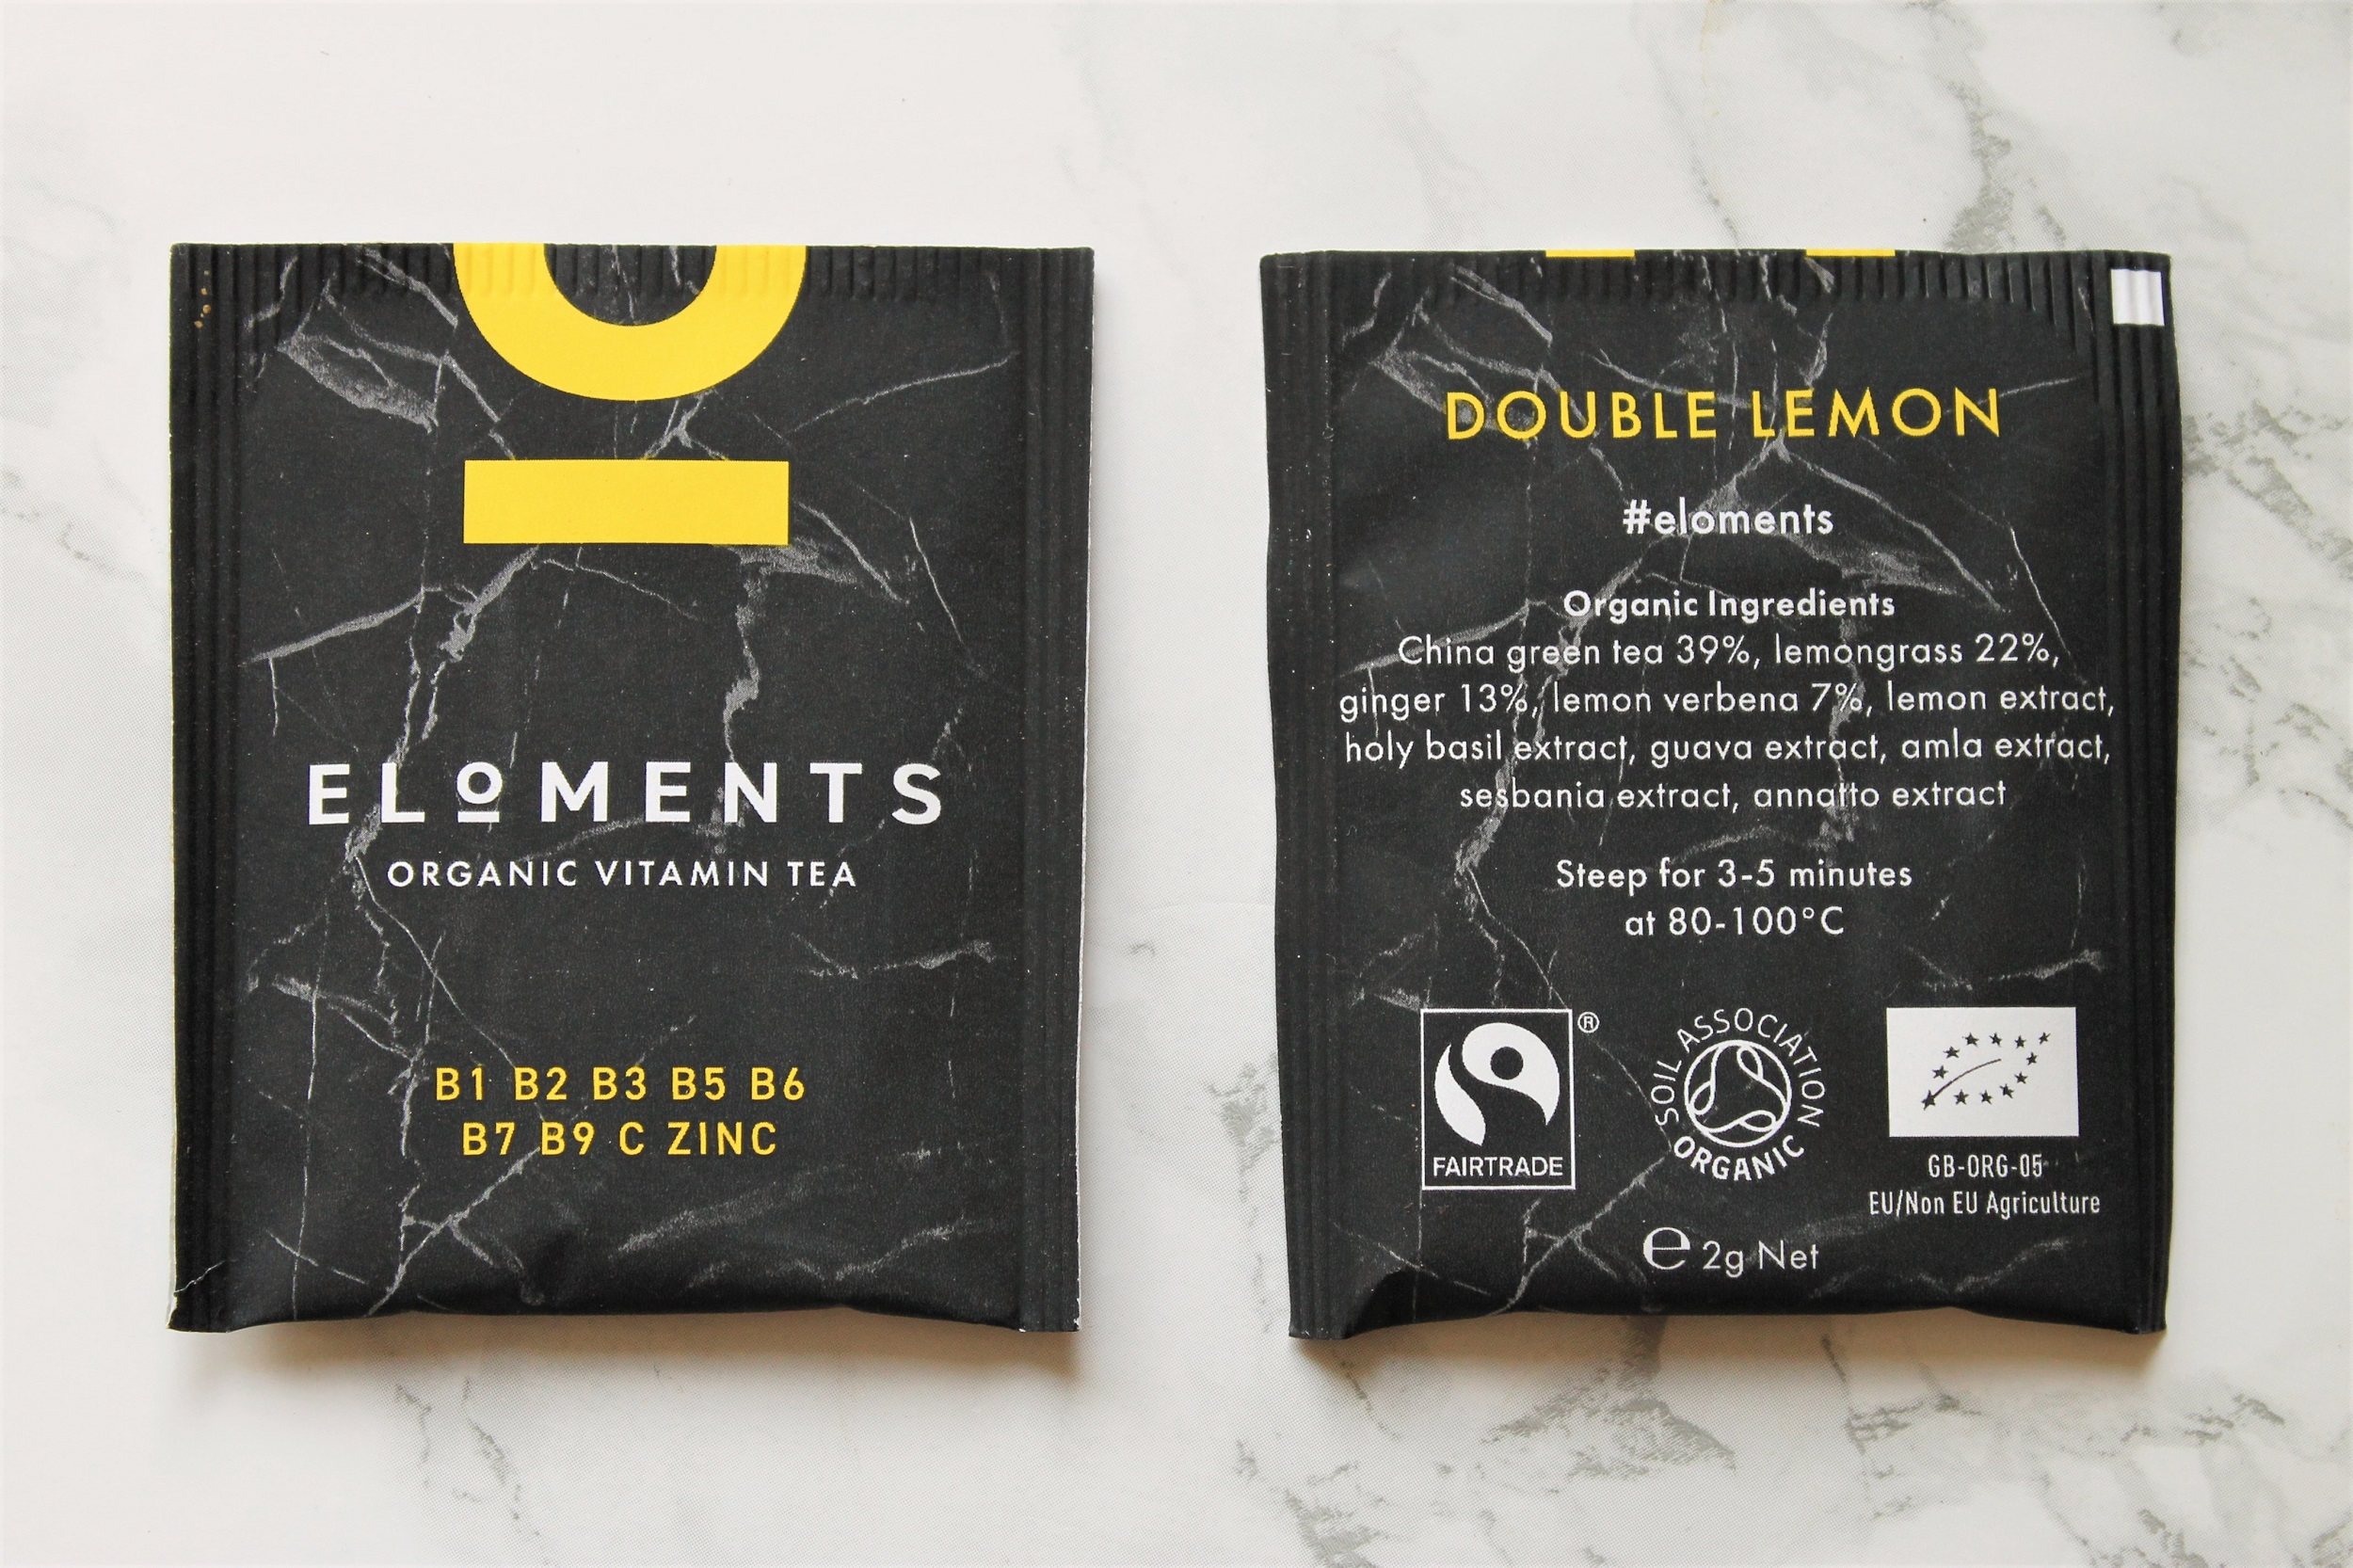 eloments vitamin teabags